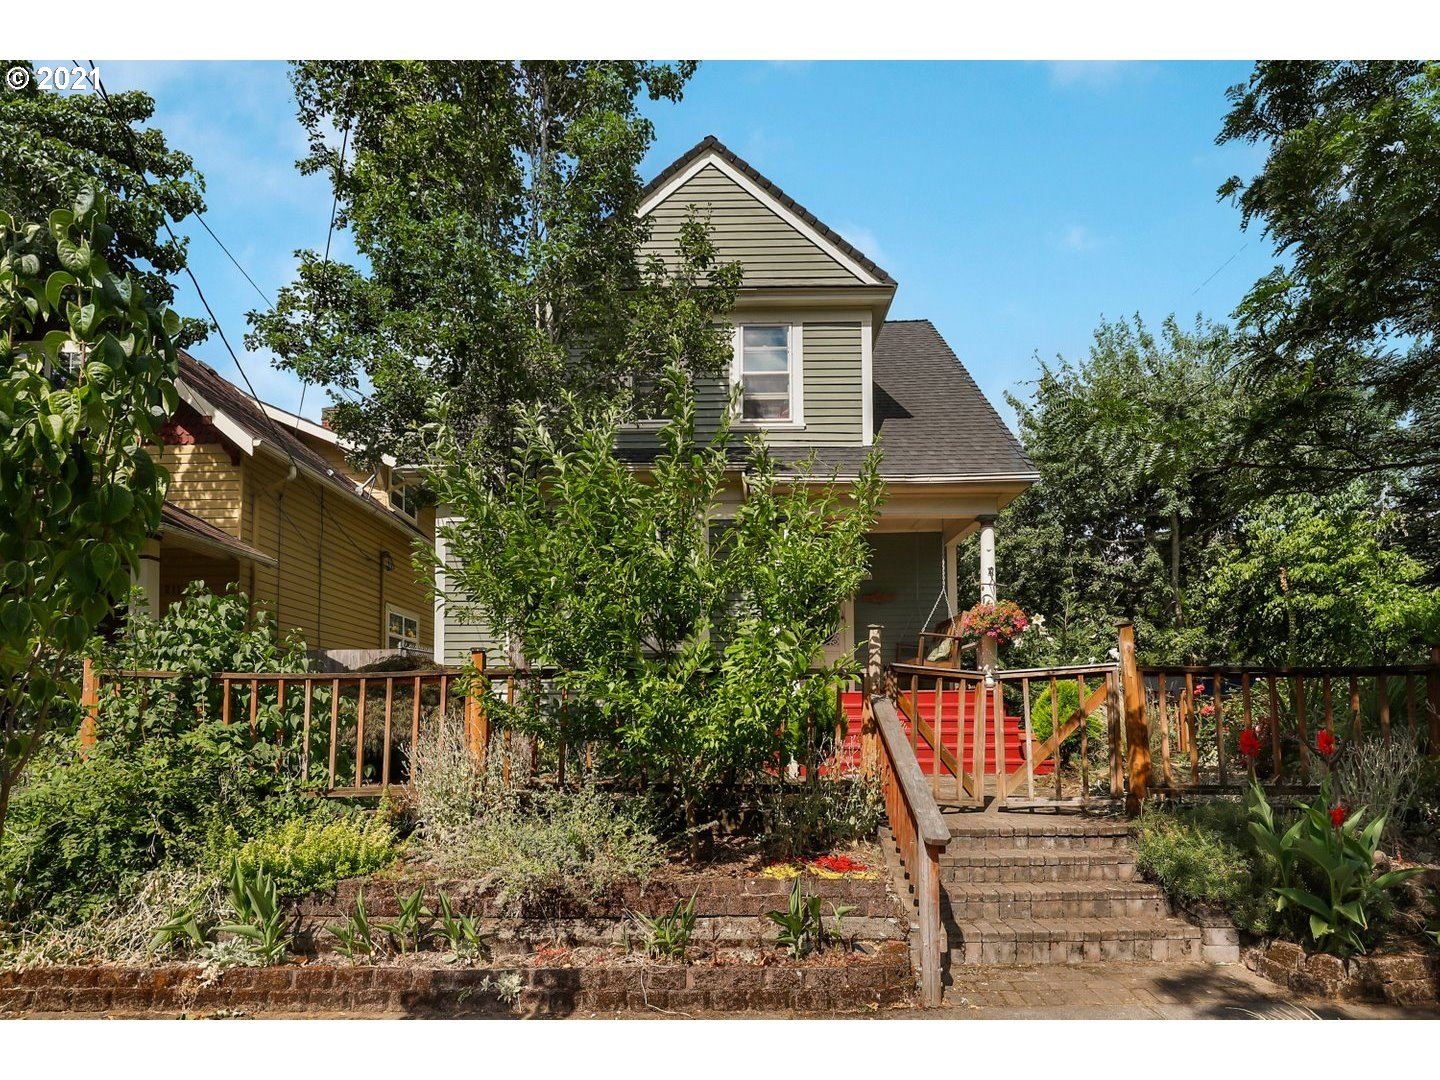 203 SE 78TH AVE, Portland, OR 97215 - MLS#: 21647309